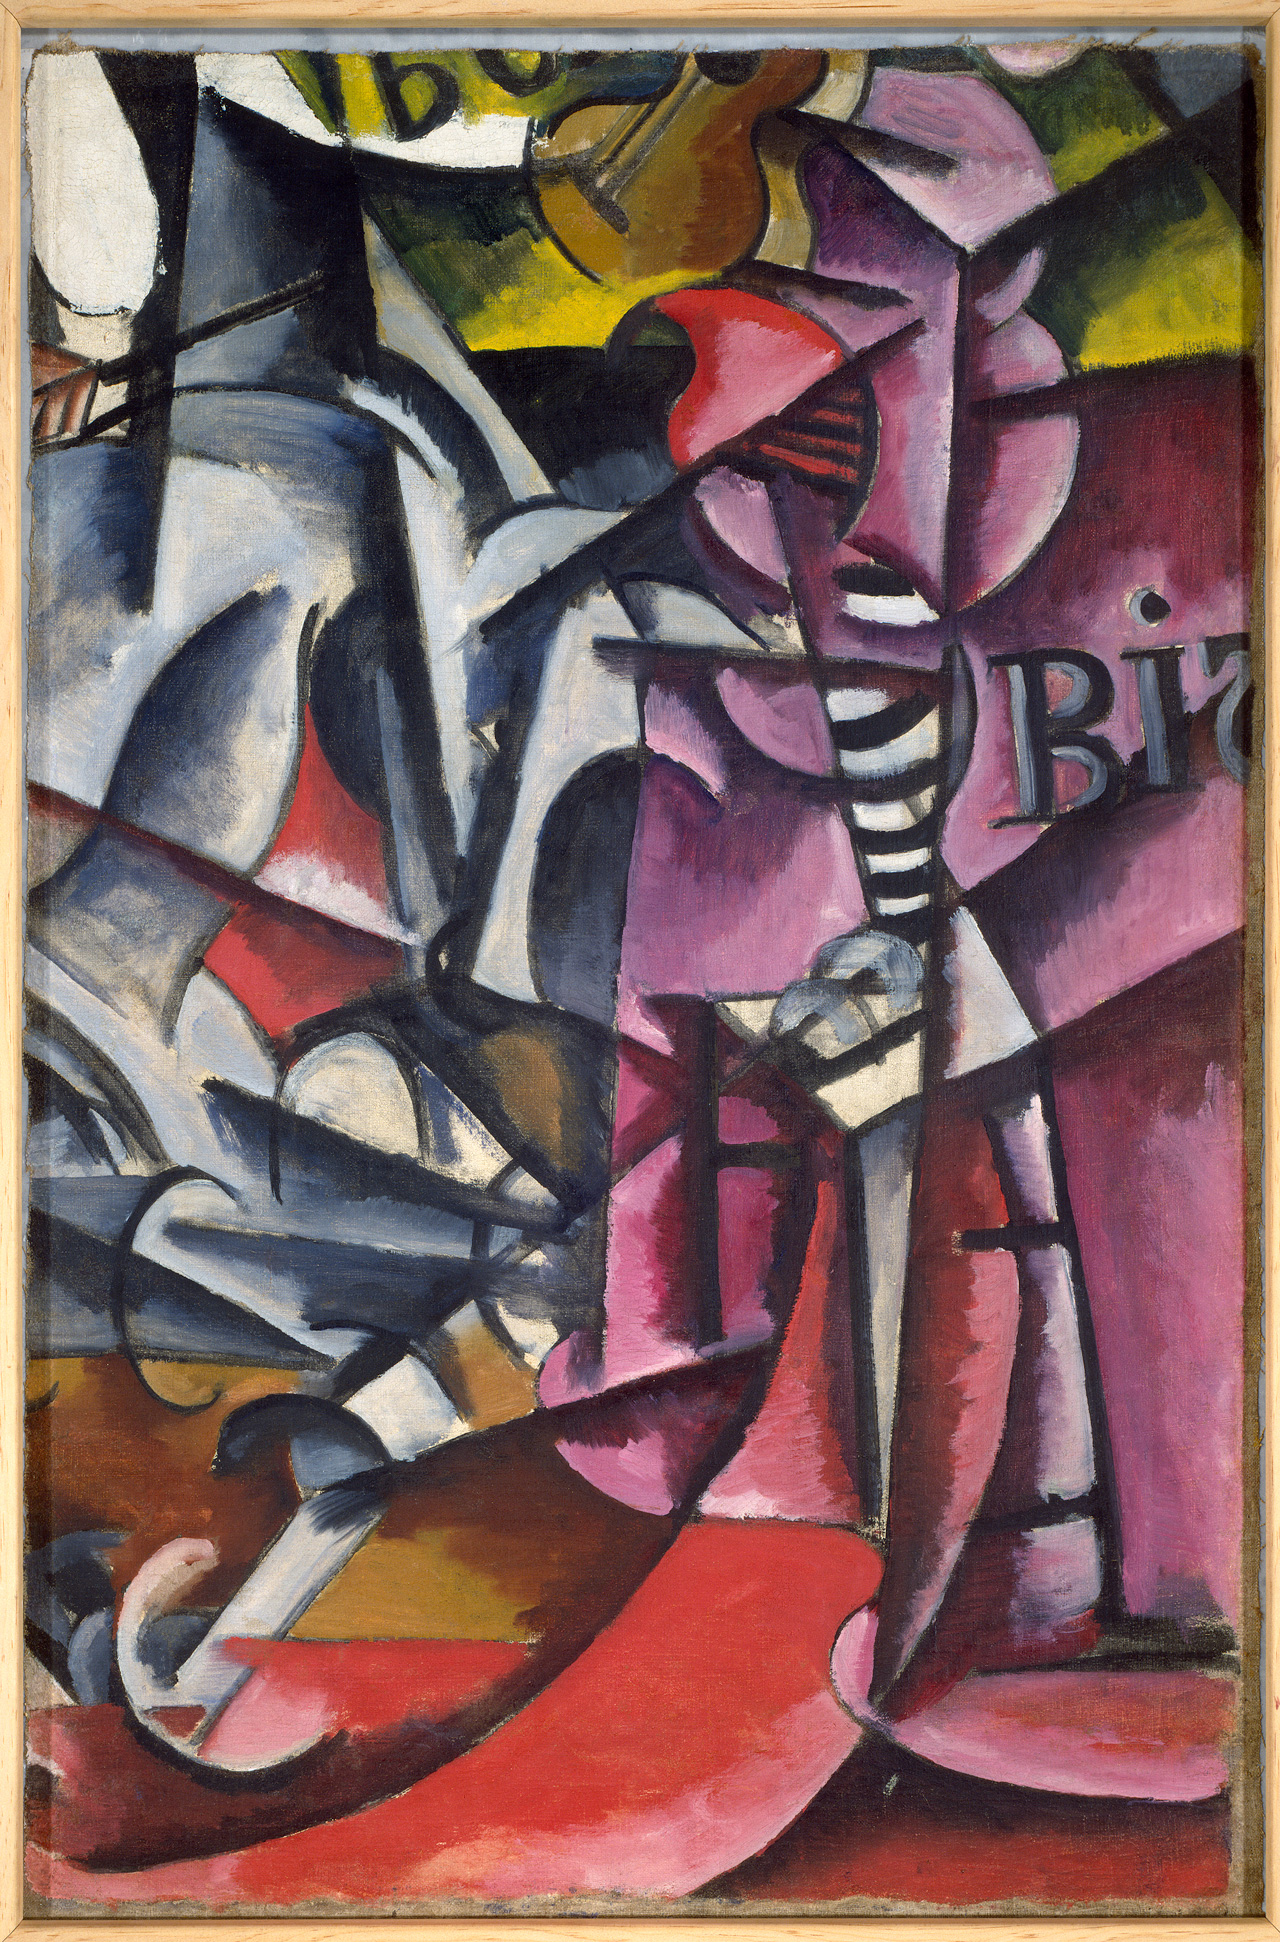 Liubov Popova, Untitled, (c.1915), oil on canvas, 41 7/8 x 28 inches (Solomon R.